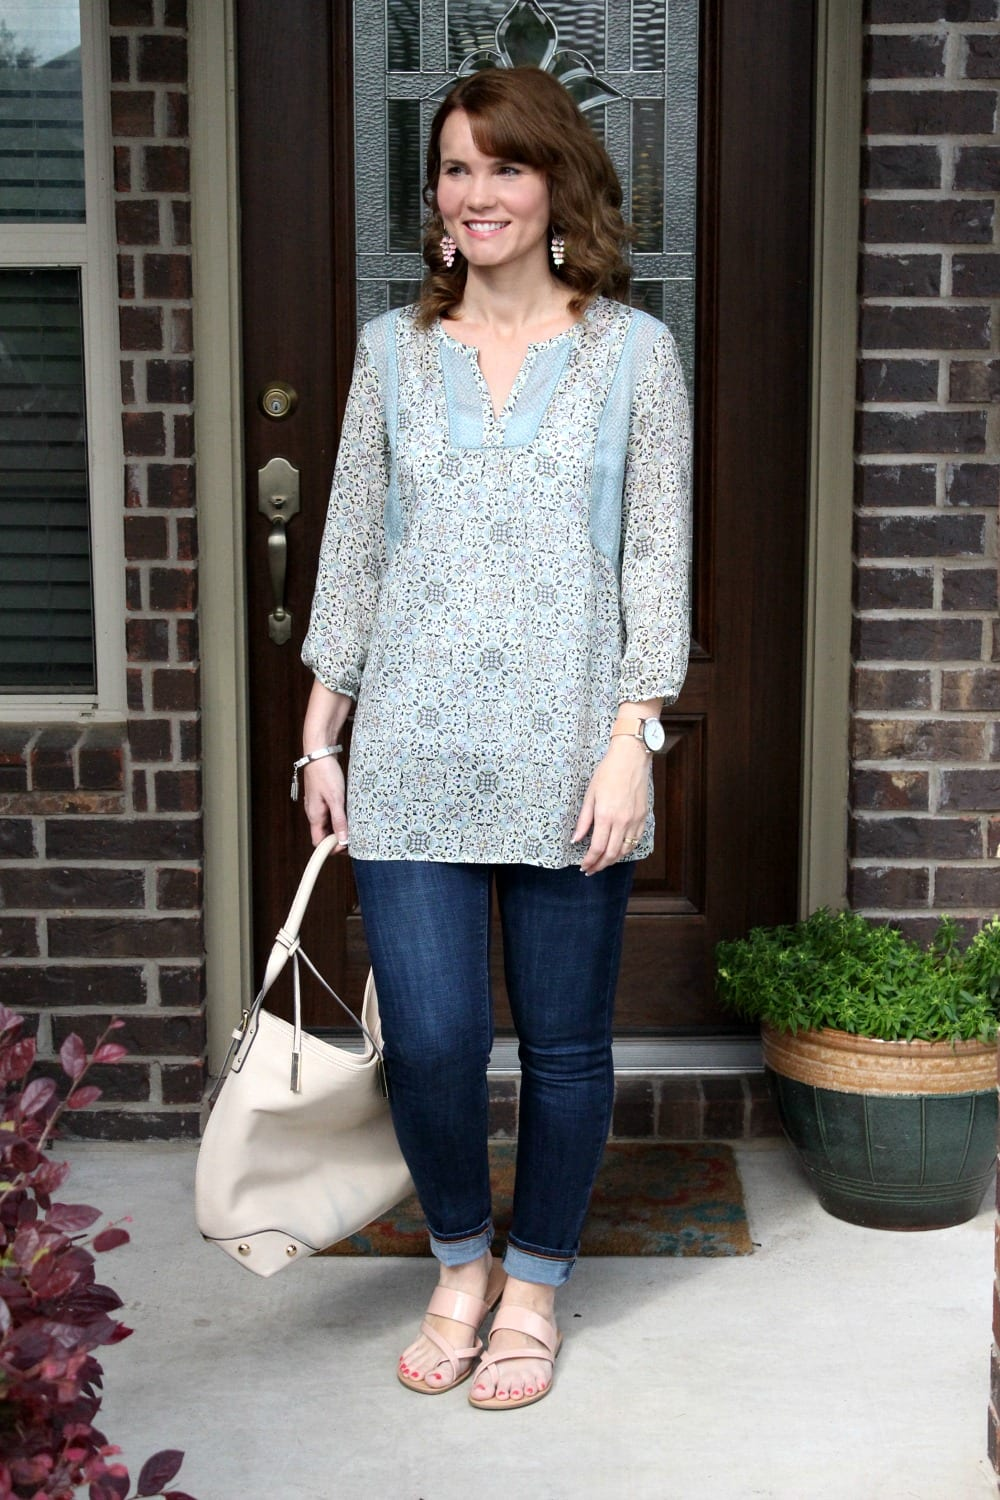 Spring outfit idea: Rolled denim, pastel tunic and patent sandals in blush.